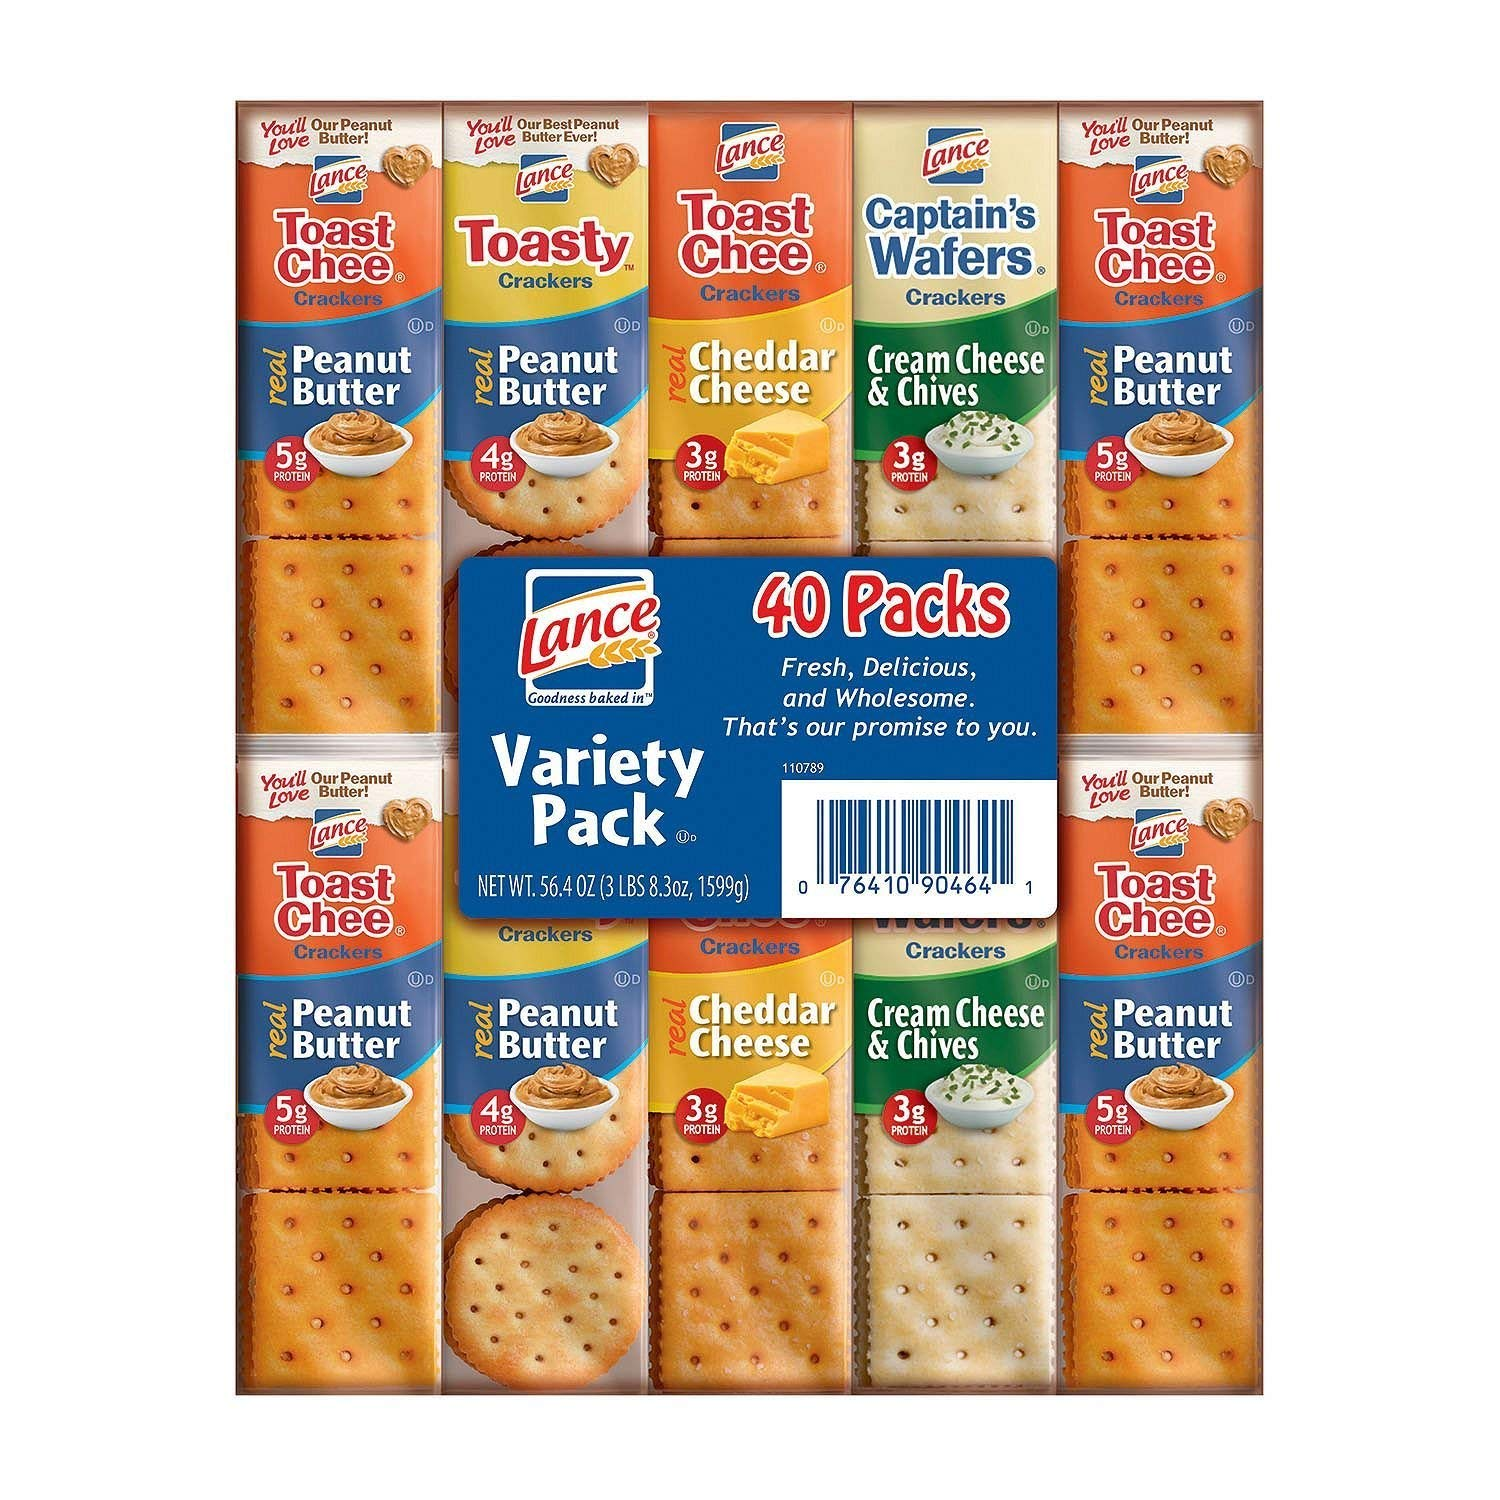 Lance Variety Pack,40 count, (56.8 oz total weight) (2 Pack (40ct))